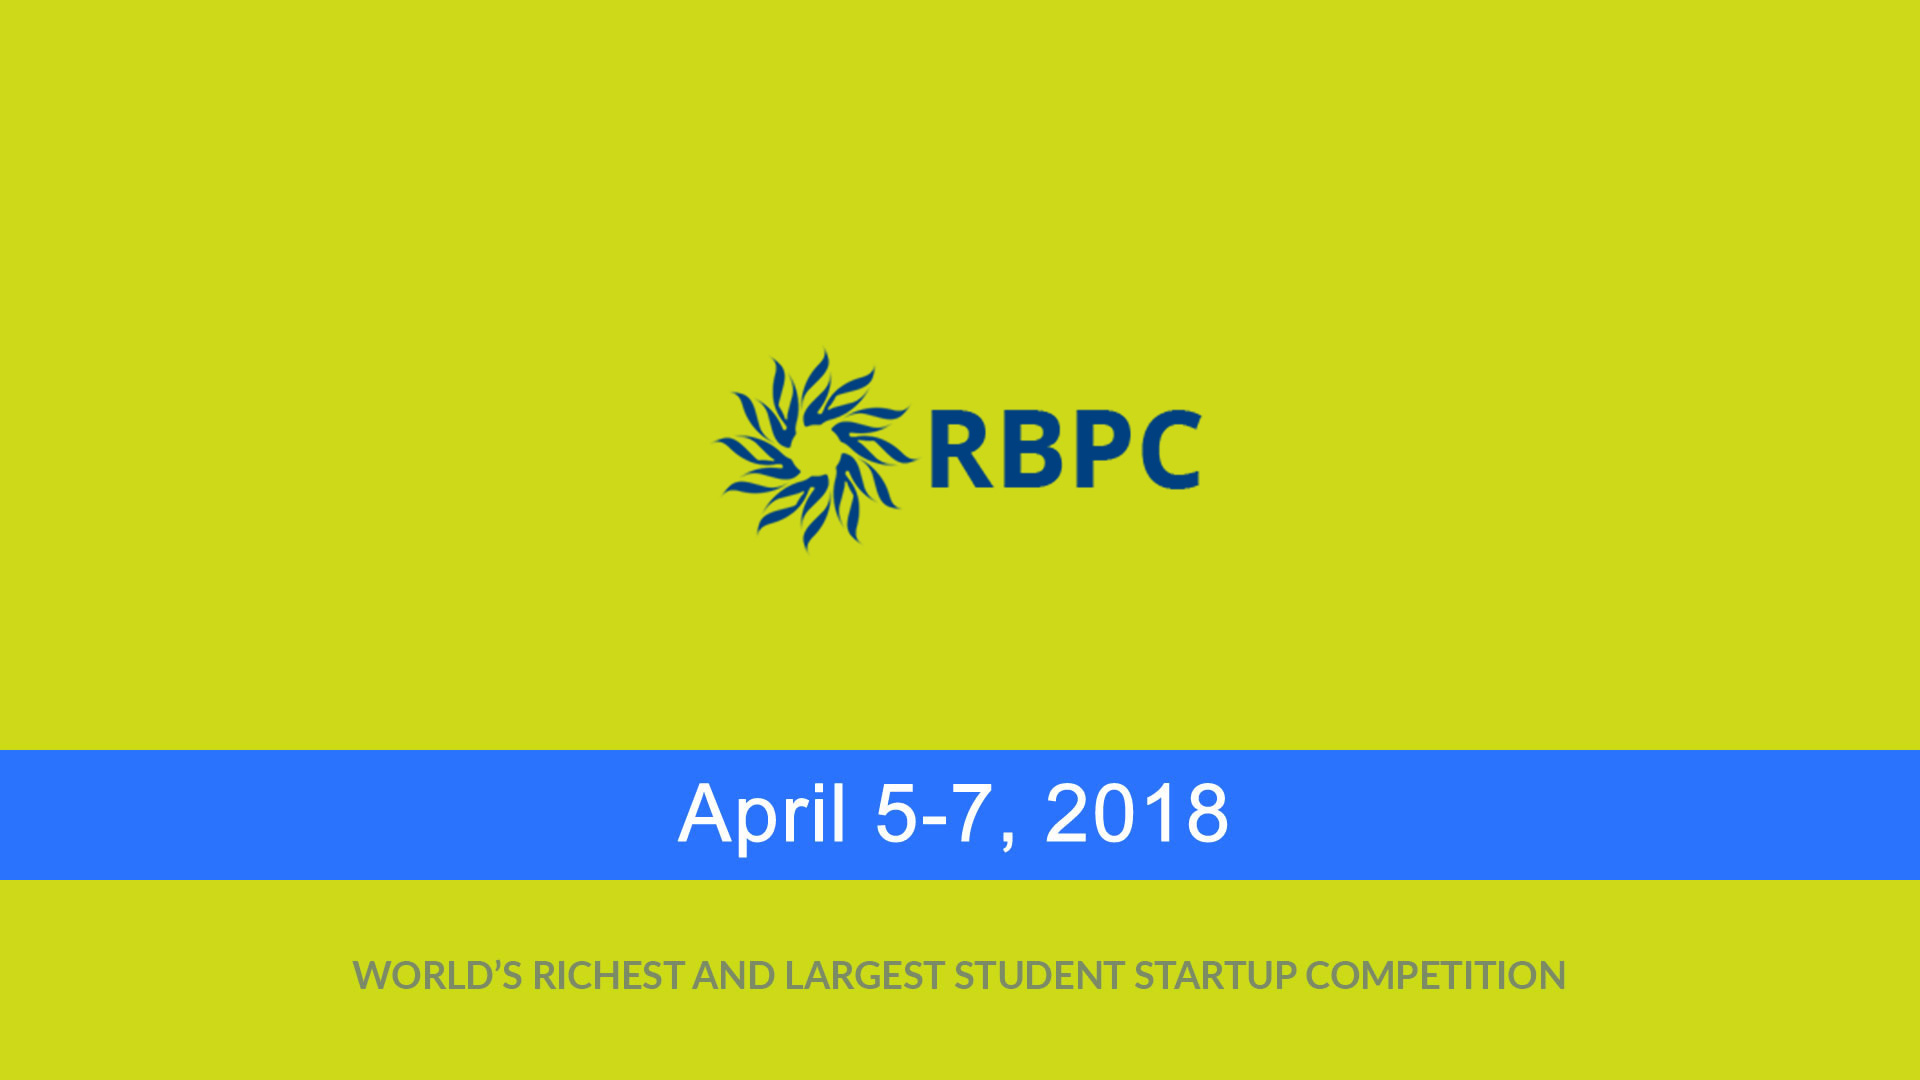 The Company is the world's richest and largest graduate-level student startup competition. It is hosted and organized by the Rice Alliance for Technology and Entrepreneurship, which is 's internationally-recognized initiative devoted to the support of entrepreneurship, and the Jesse H. Jones Graduate School of Business.